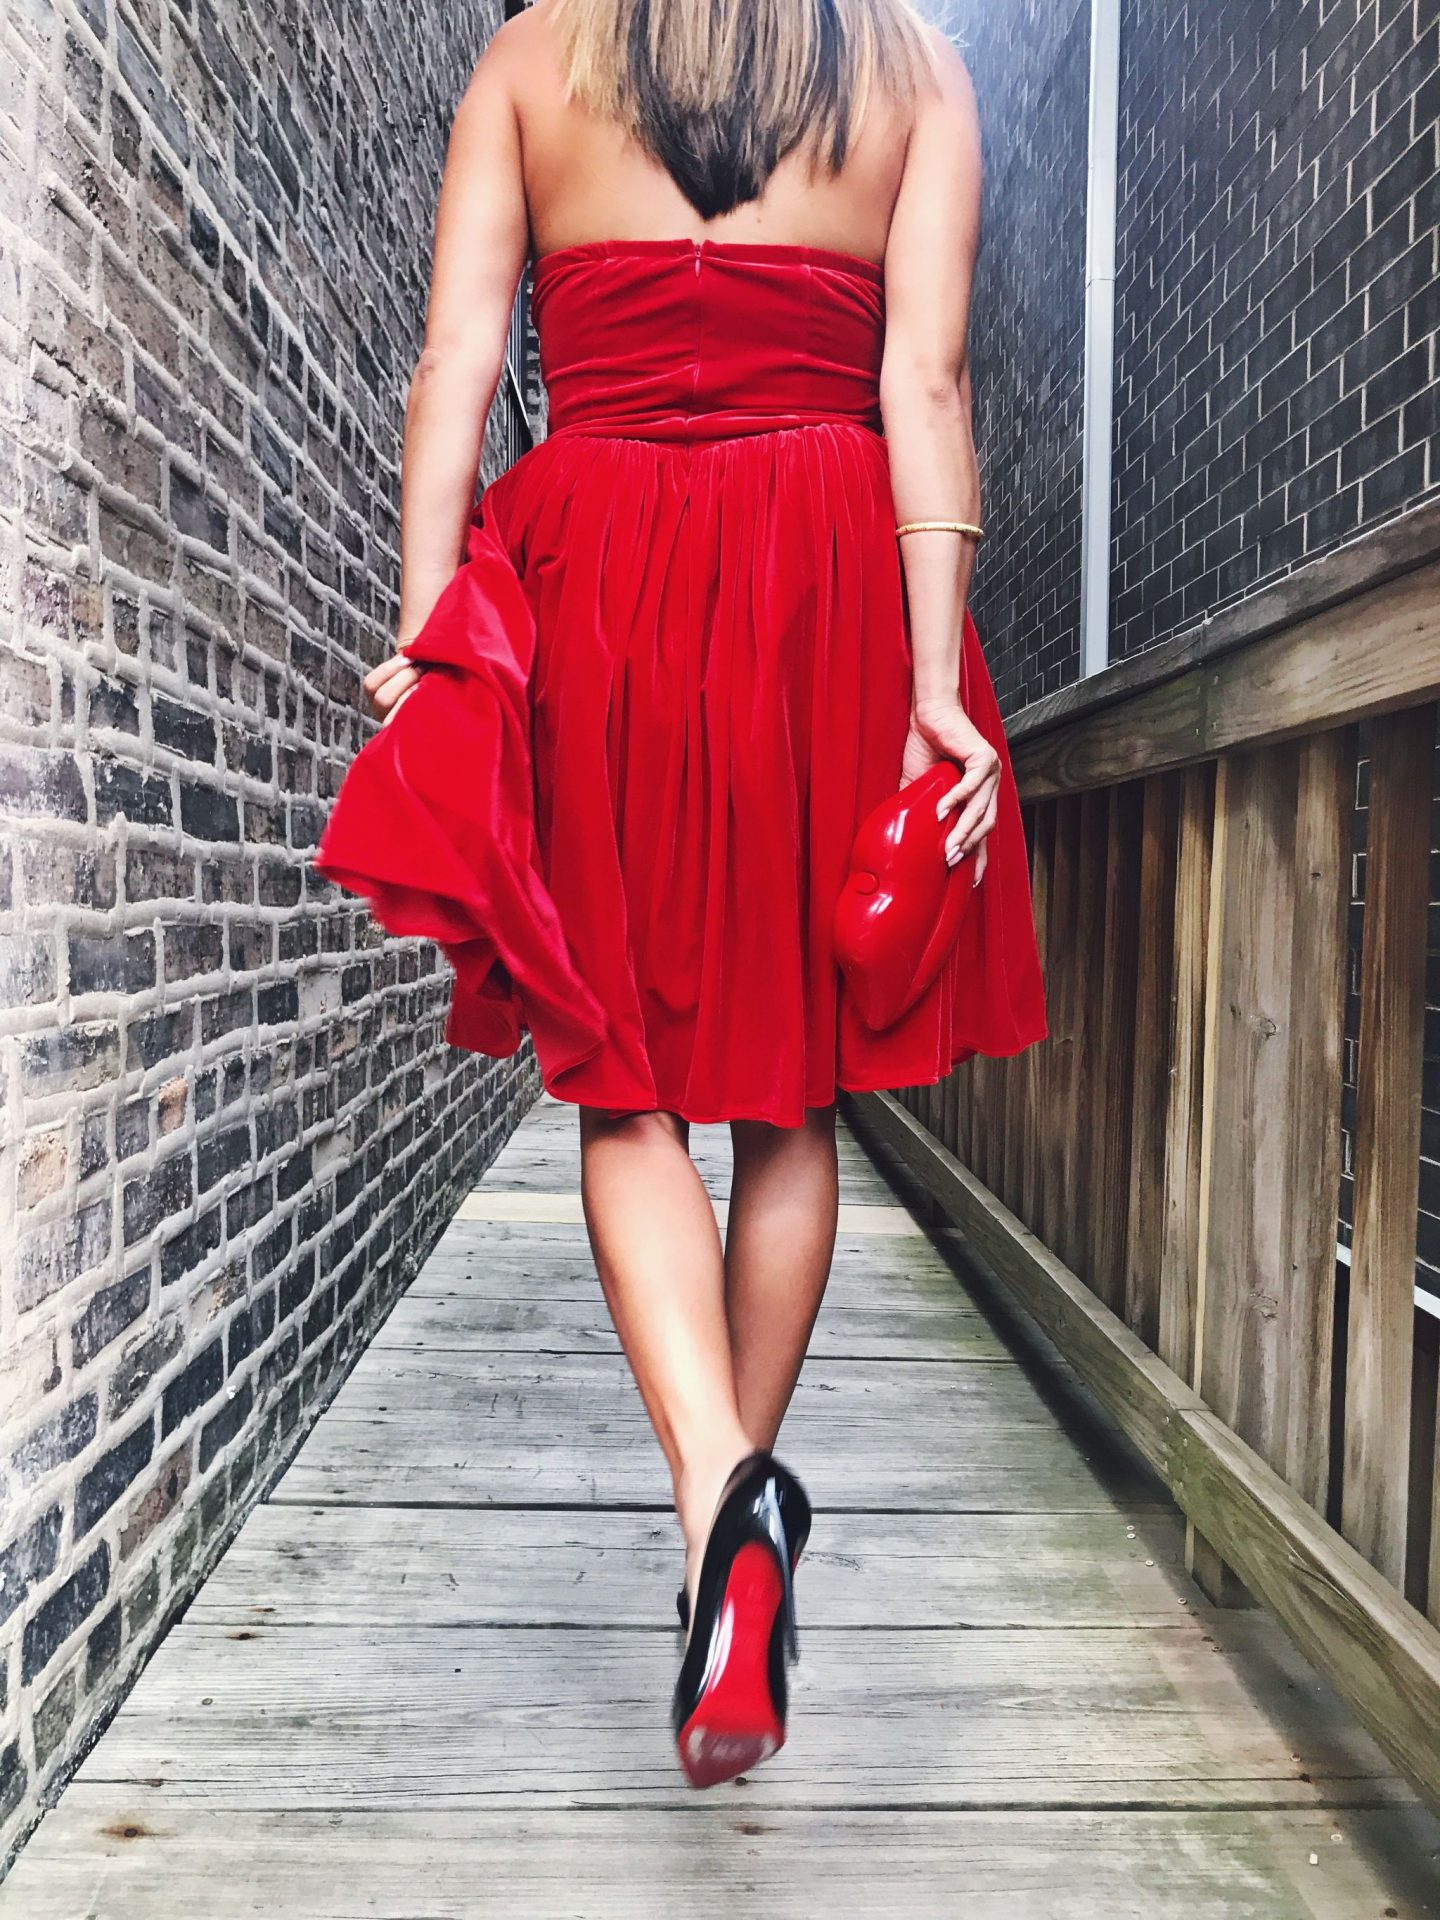 red dresses for Valentine's Day, what to wear for vday, red dresses for vday, louboutins, best red dresses, Jennifer woman, chicago blogger, fashion blogger